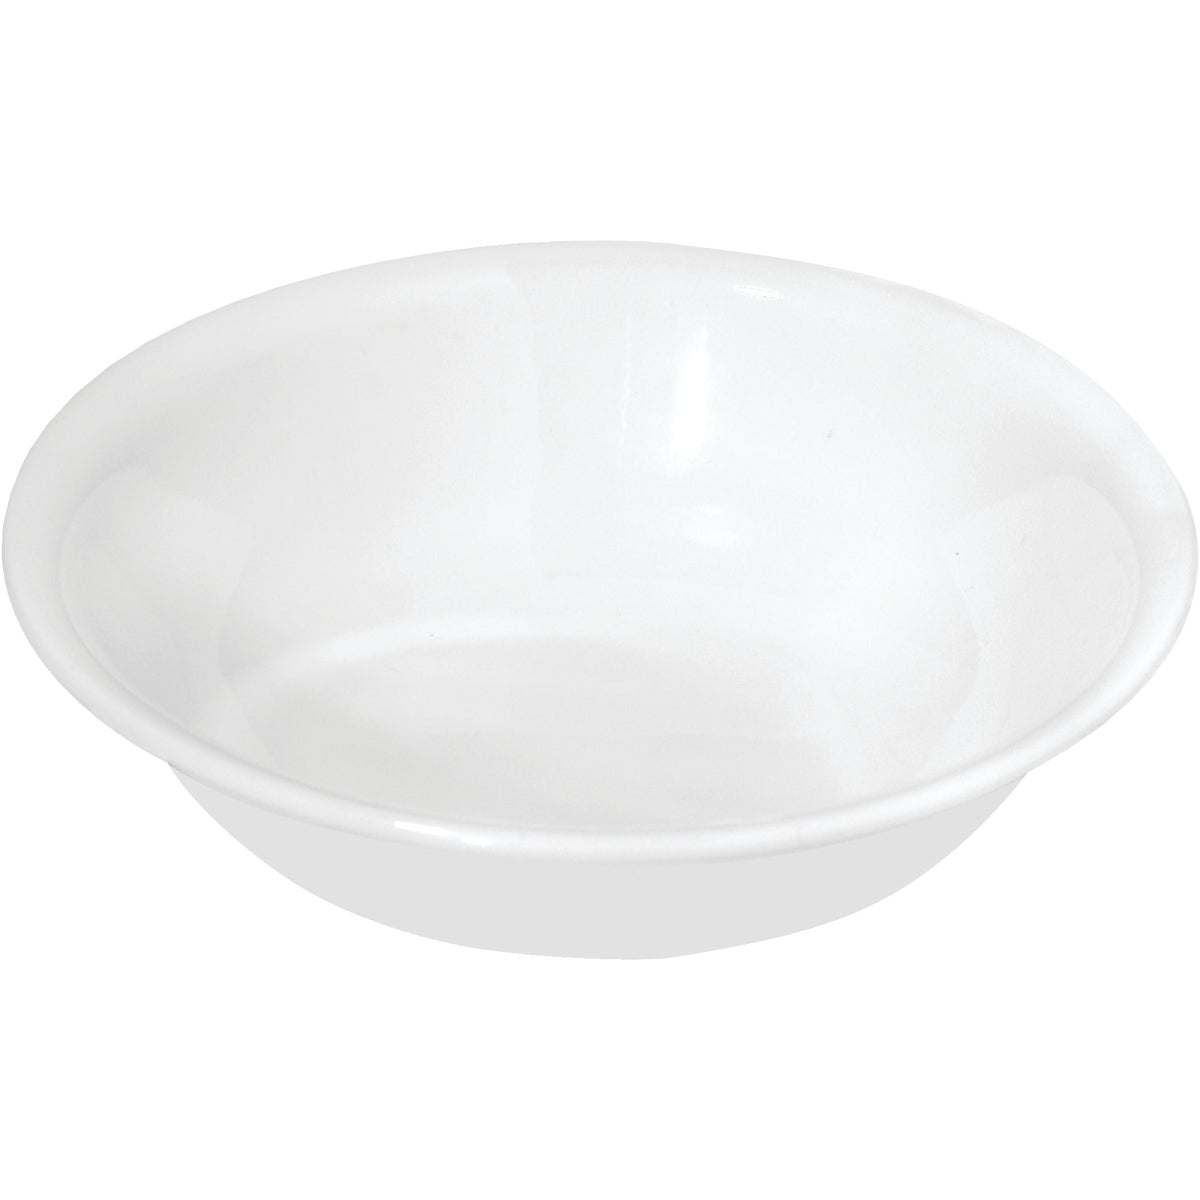 SMALL WHITE BOWL - 6003899 by World Kitchen